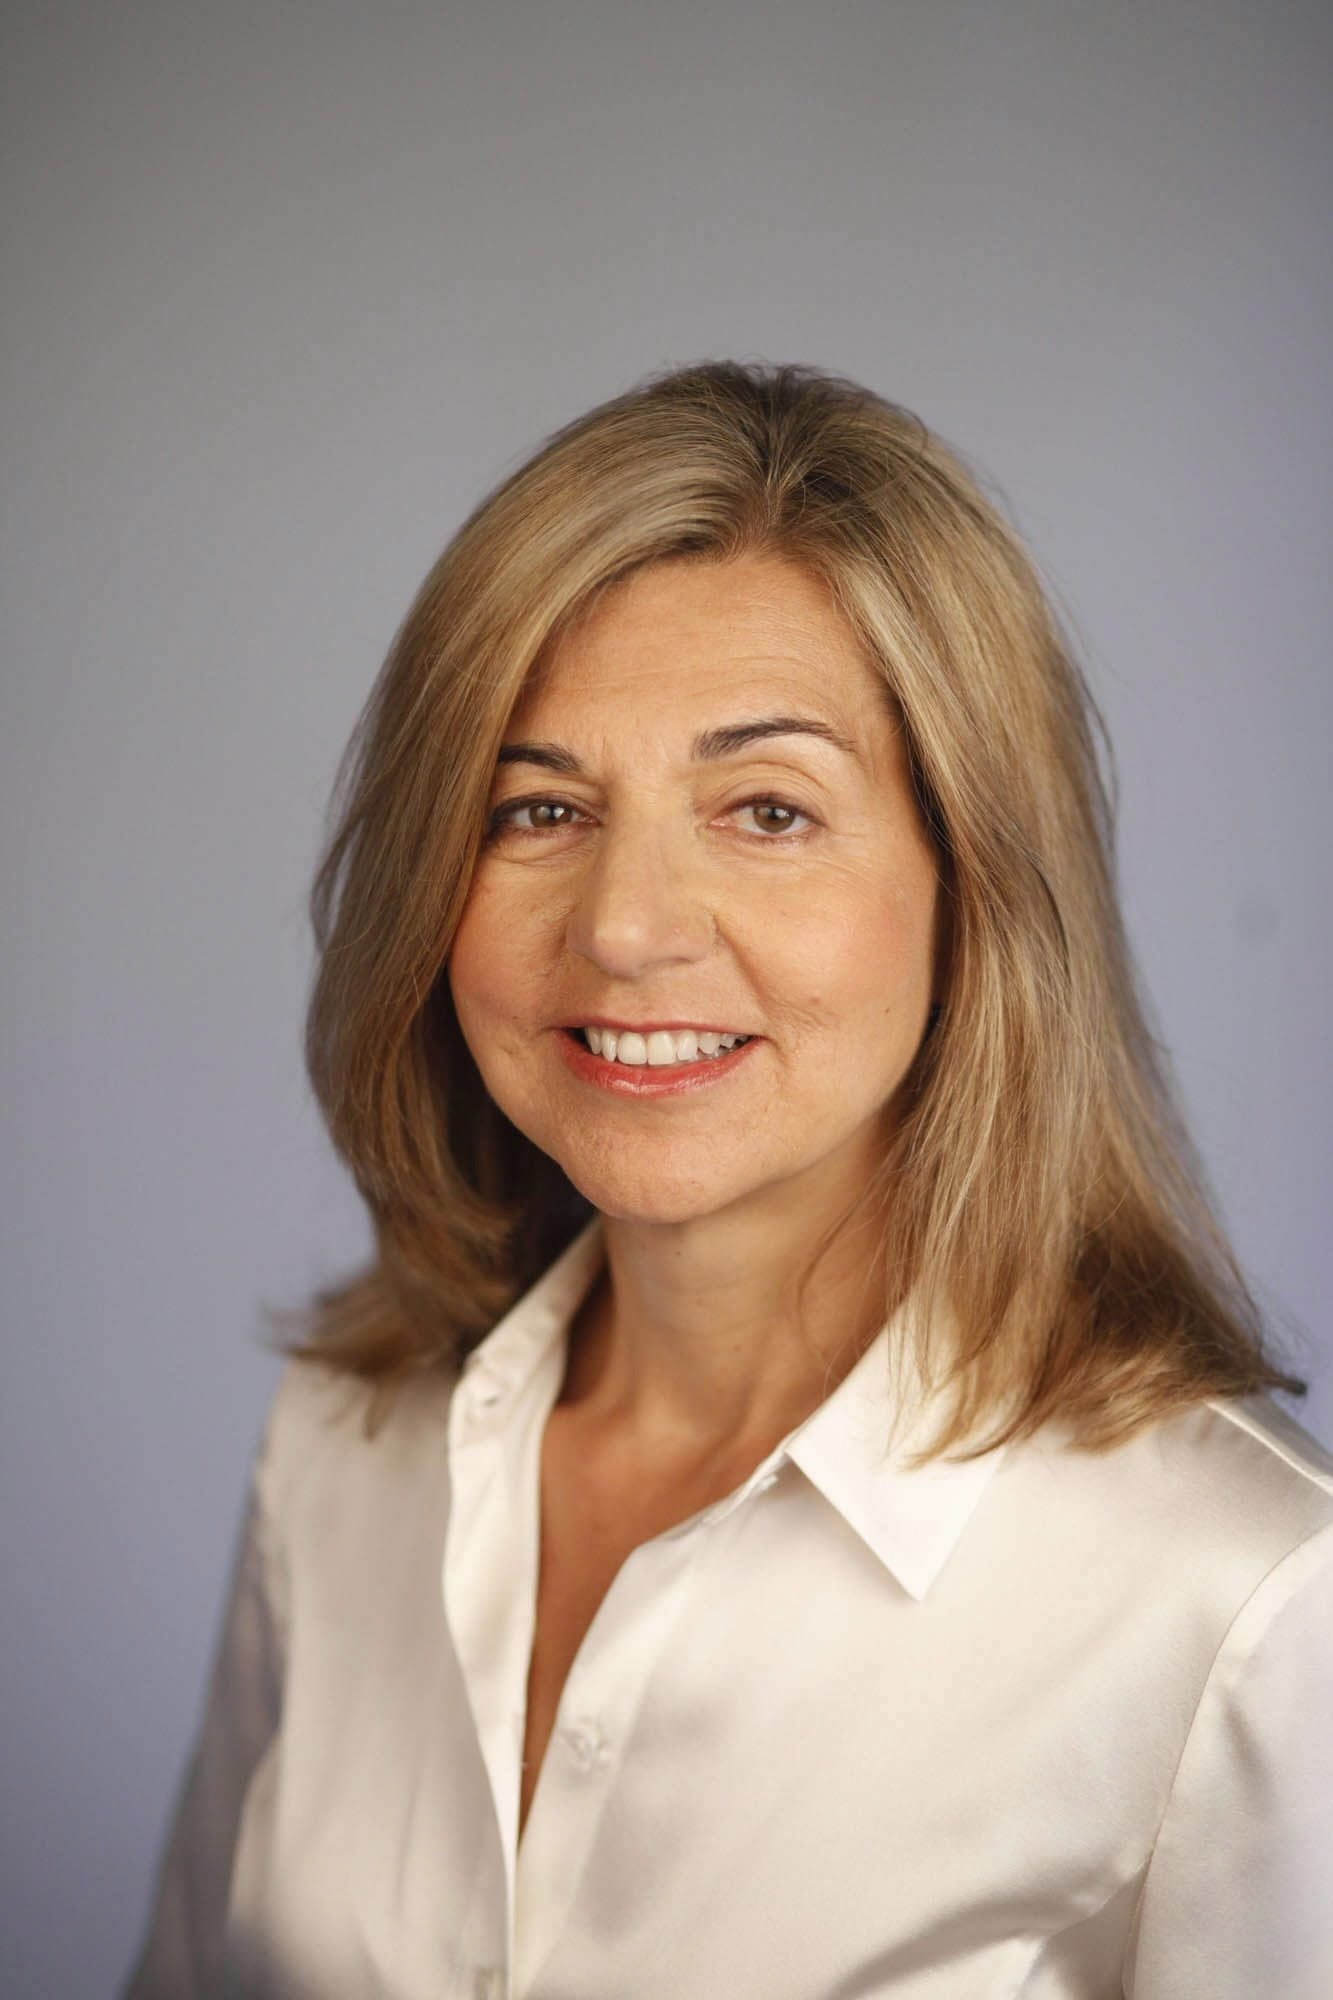 Margaret Sullivan is leaving the New York Times to serve as Washington Post's media columnist. She spent 13 years leading The Buffalo News.